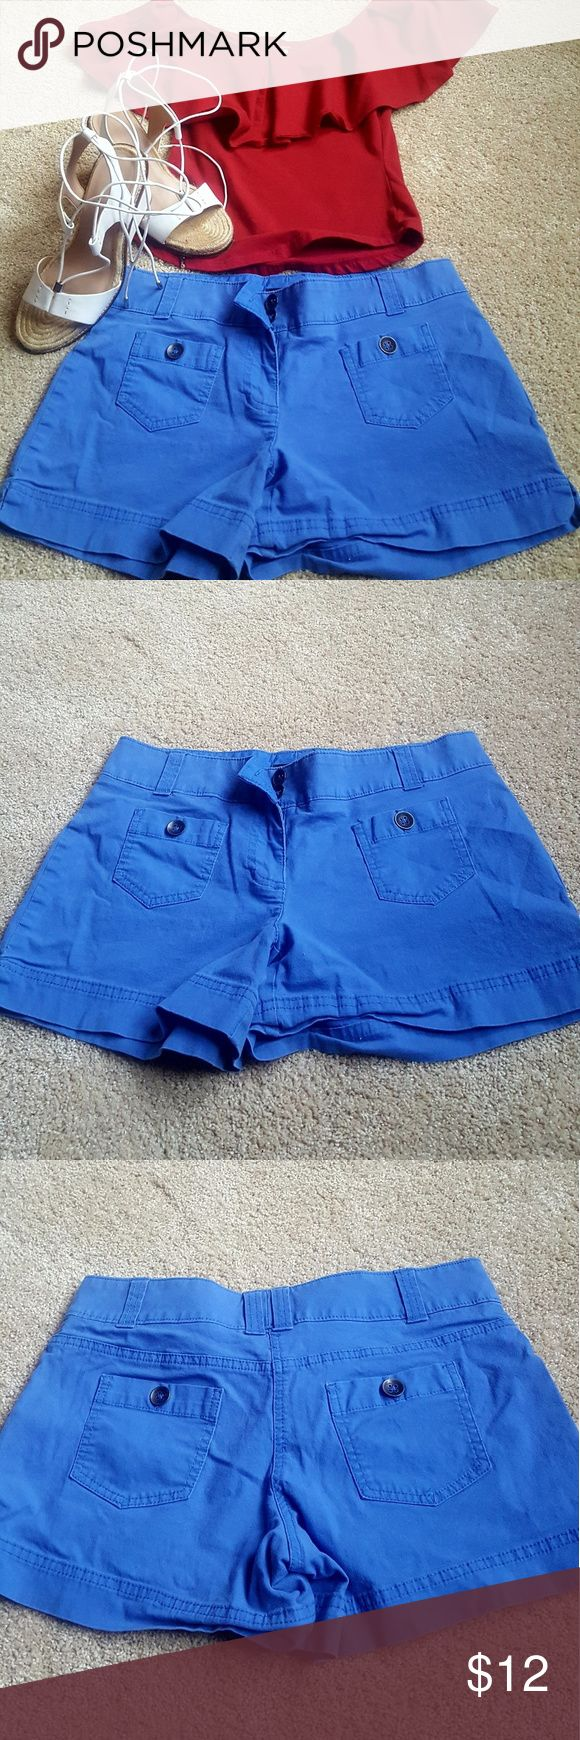 New York and Co shorts Gorgeous and soft. Cobalt blue simply adorable for your spring collection. 4 inch inseam true size 4. See yellow shorts for more detail, identical except color. New York & Company Shorts